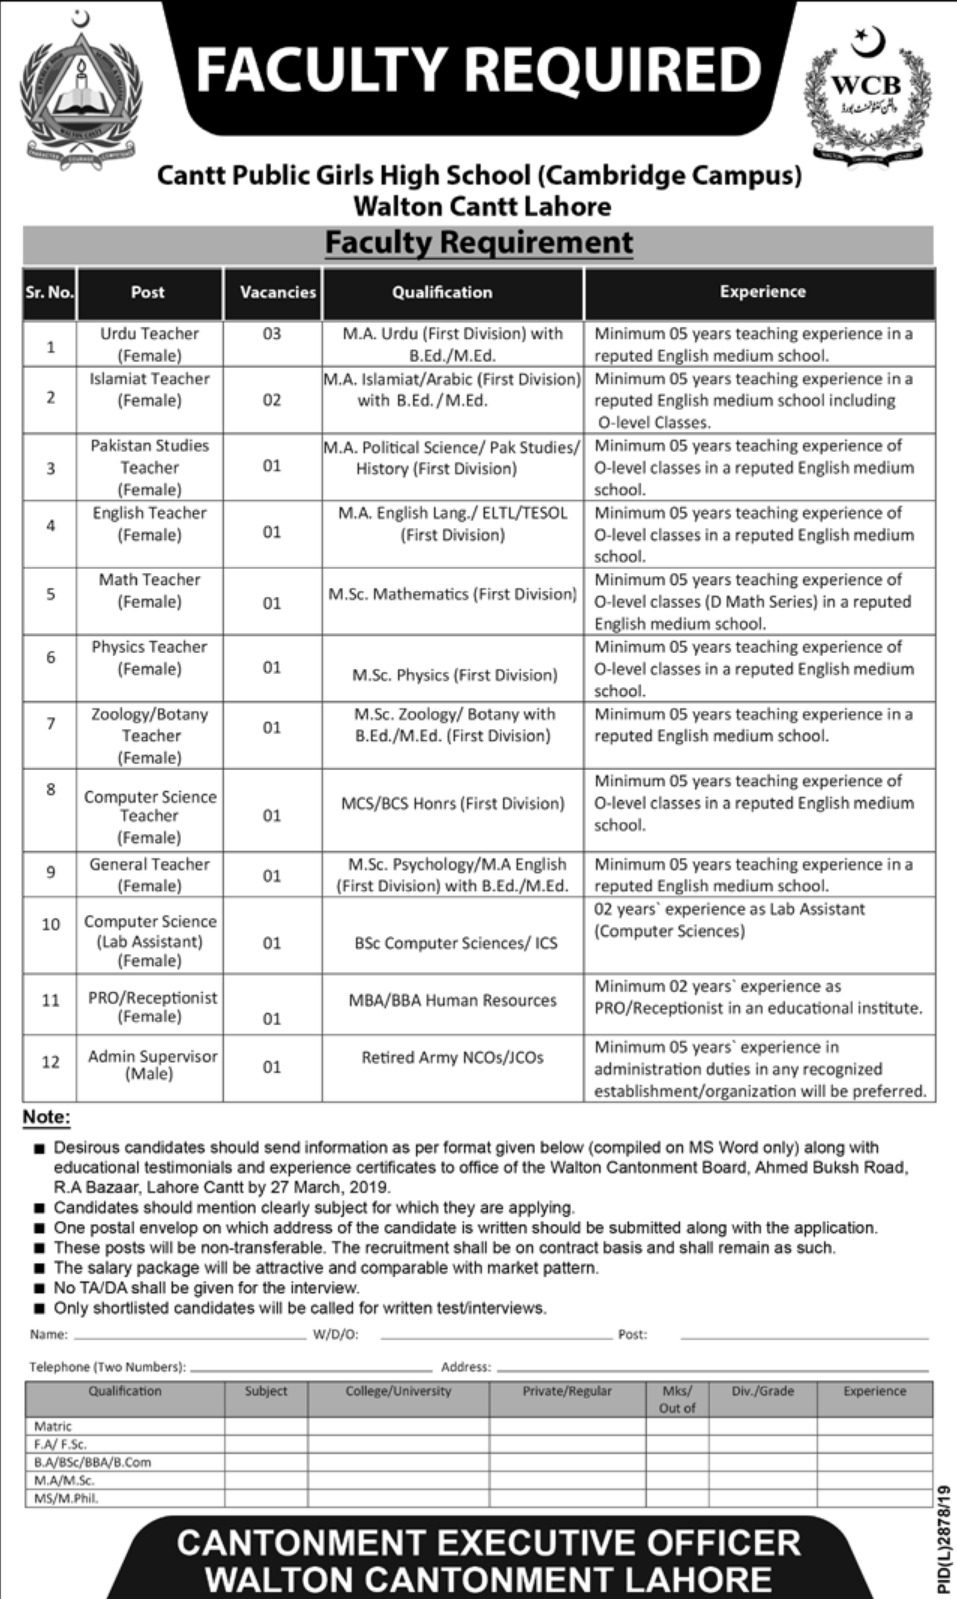 Cantt Public Girls High School Walton Cantt Lahore Jobs 2019 Latest